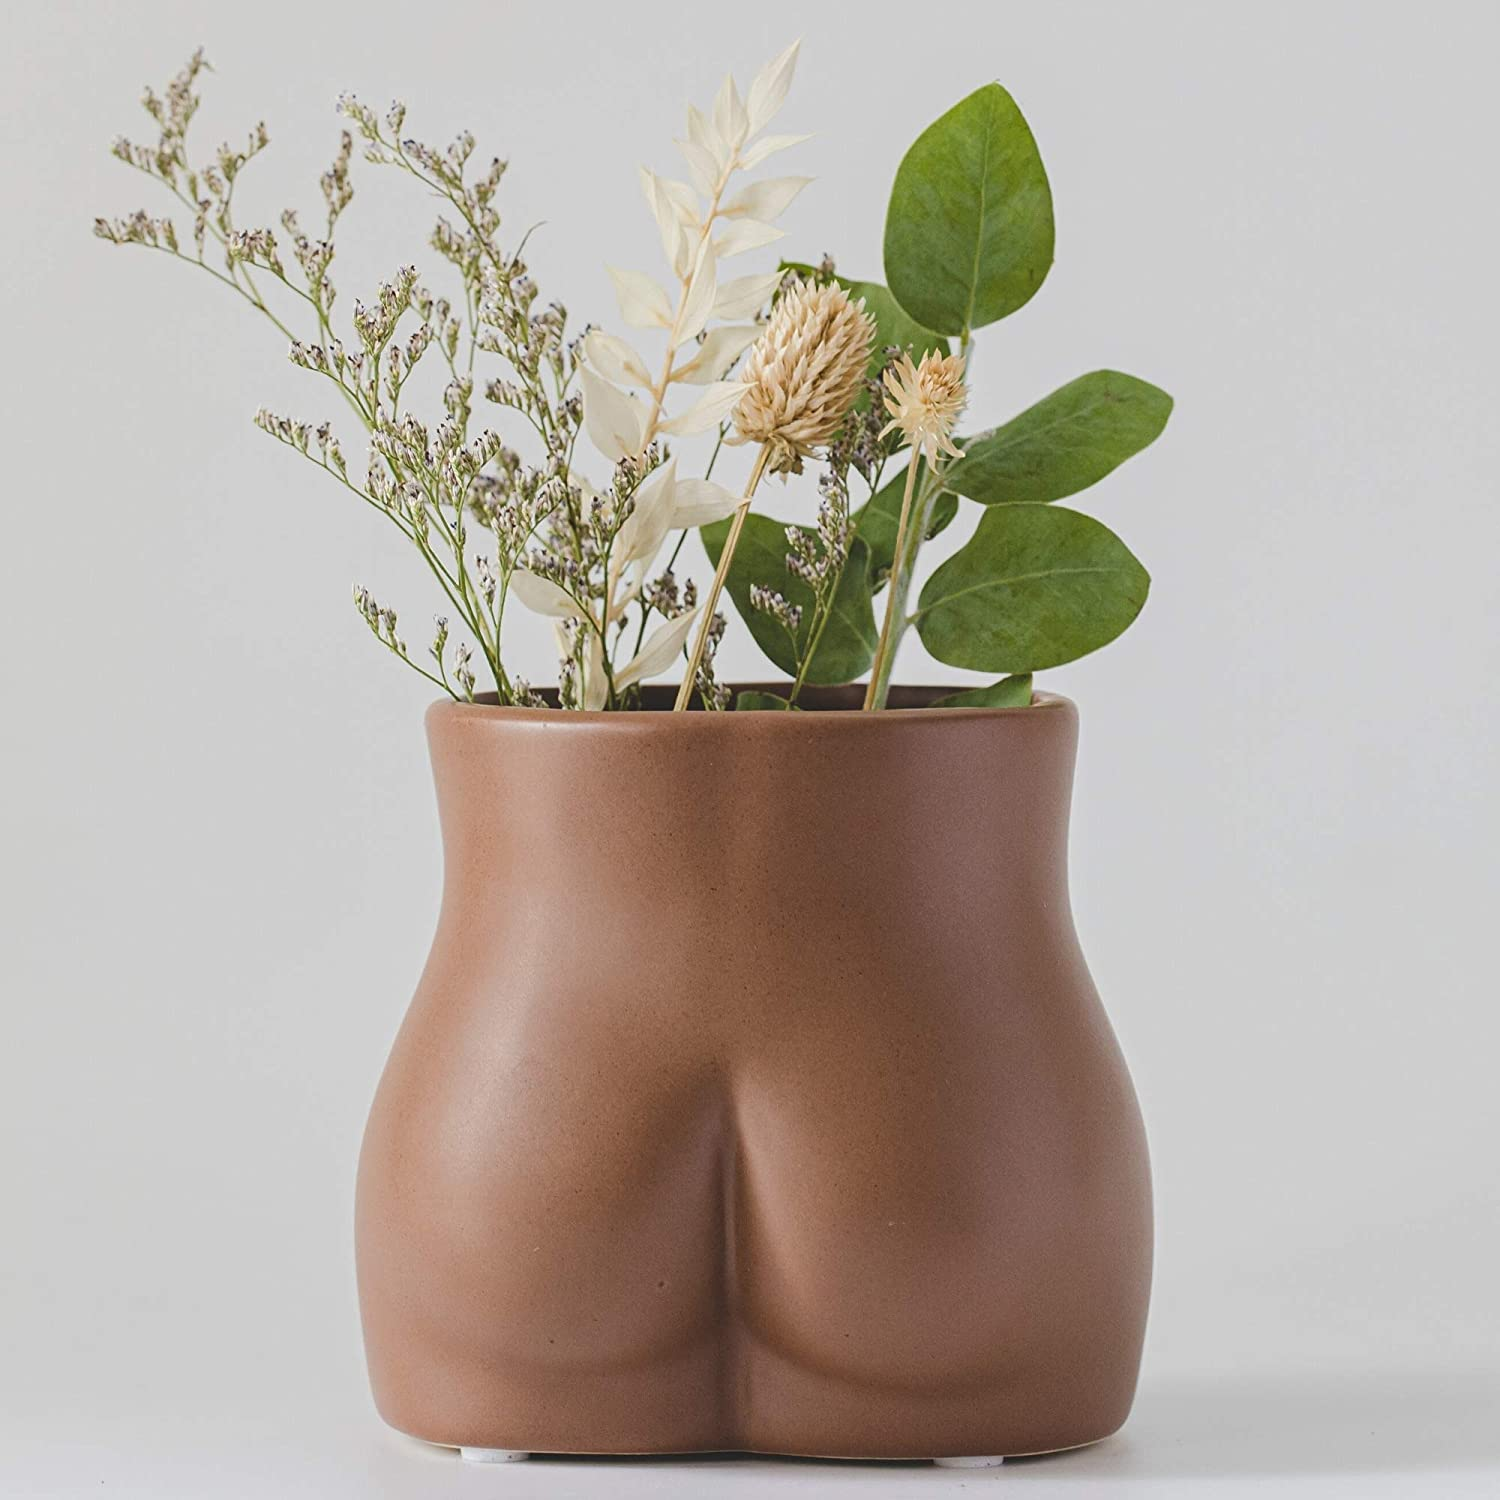 Female Form Body Flower Vase, Ceramic Vases for Modern Boho Home Decor, Lady Butt Vase, Indoor Planter Plant Pot, Feminist Decors Cute Chic Small Accent Pieces